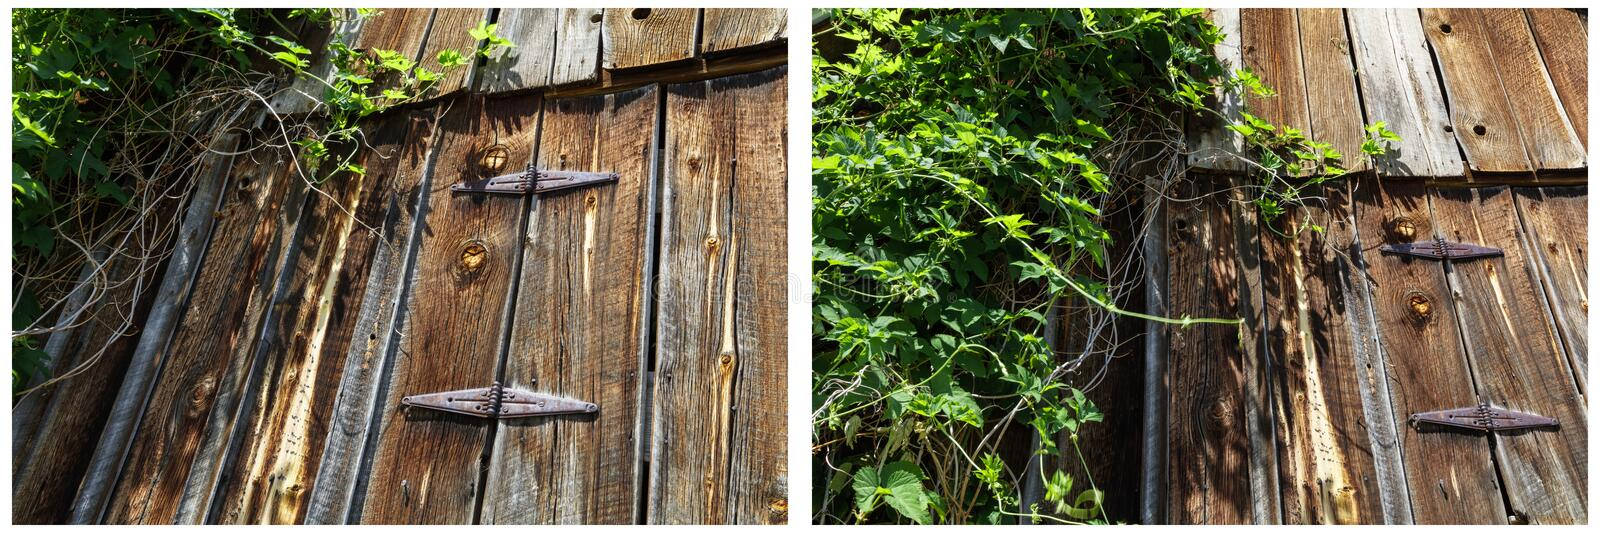 Weathered barn door hinges vines collage stock photo